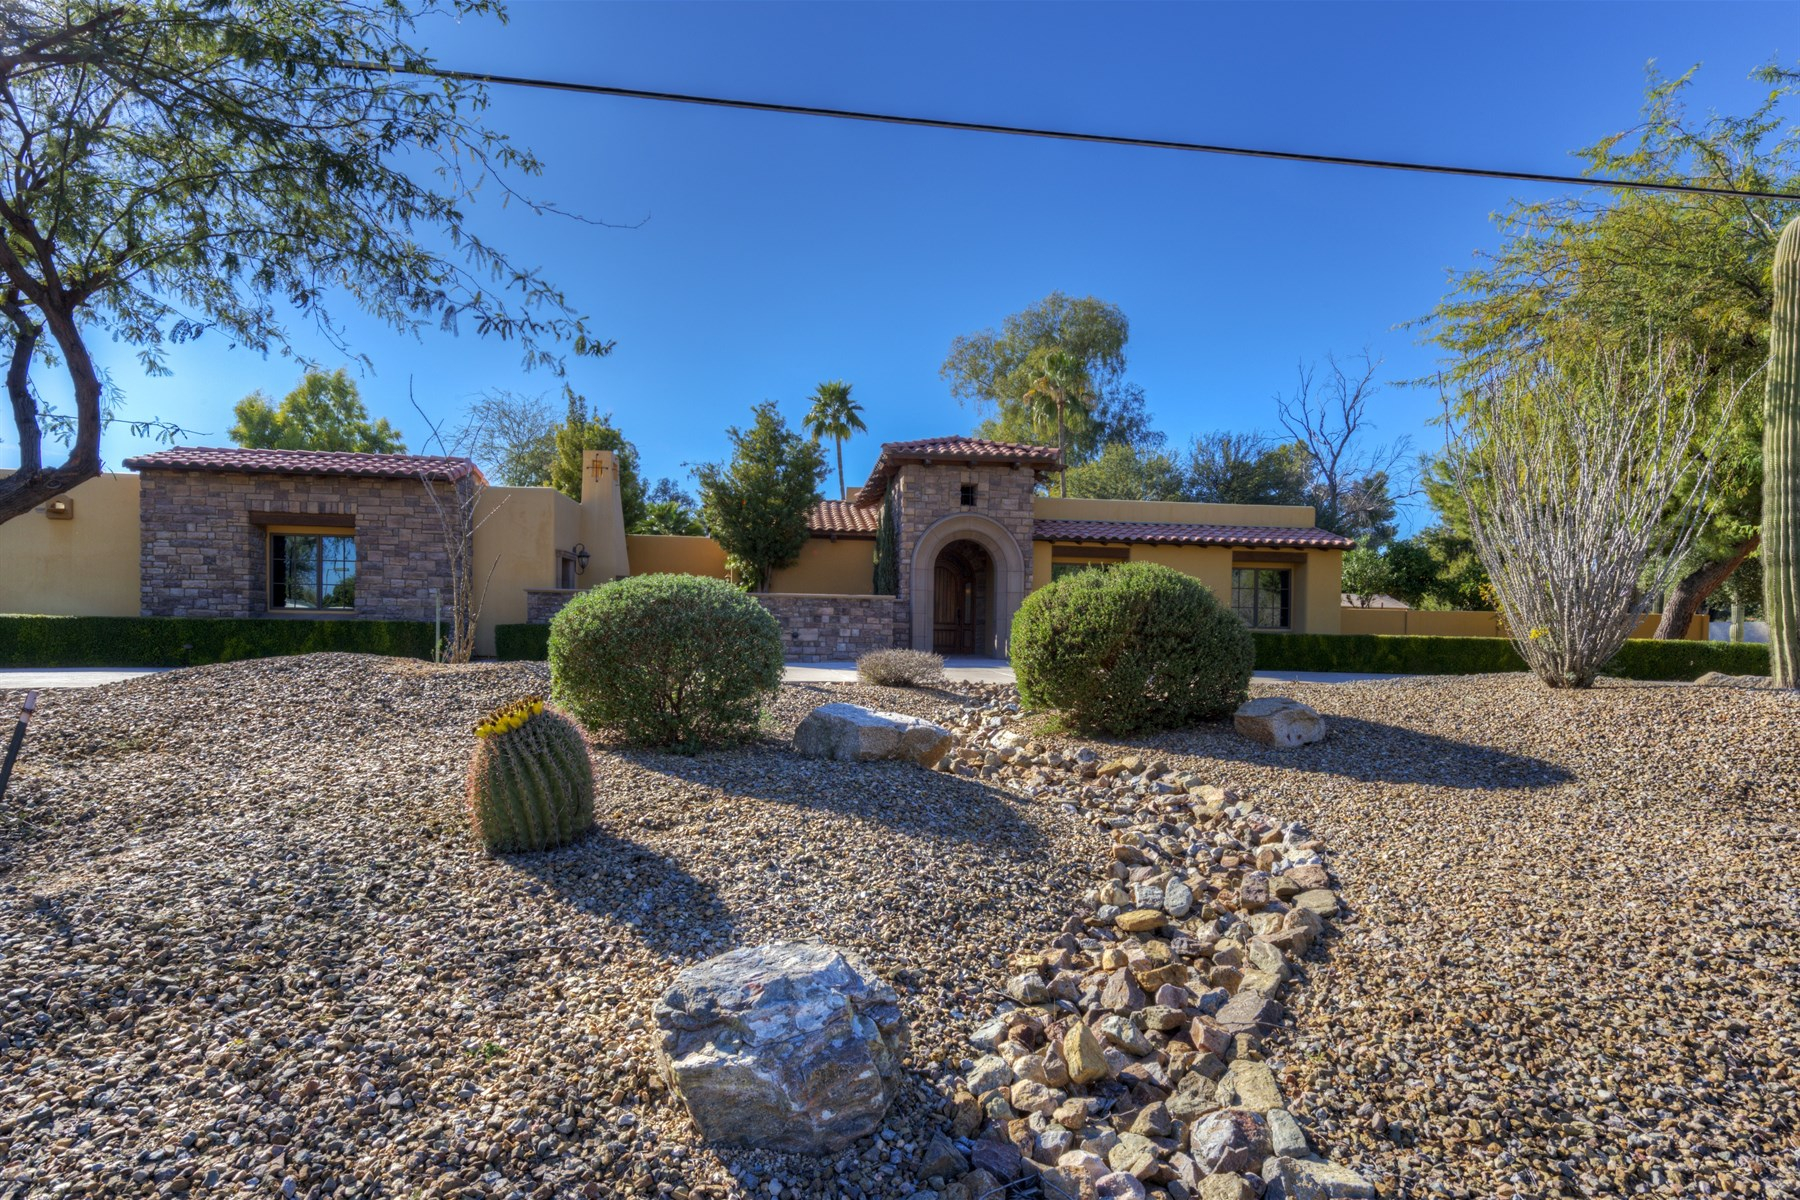 Moradia para Venda às Fantastic Remodeled Home in the Heart of 85254 11024 N 60th Street Scottsdale, Arizona 85254 Estados Unidos